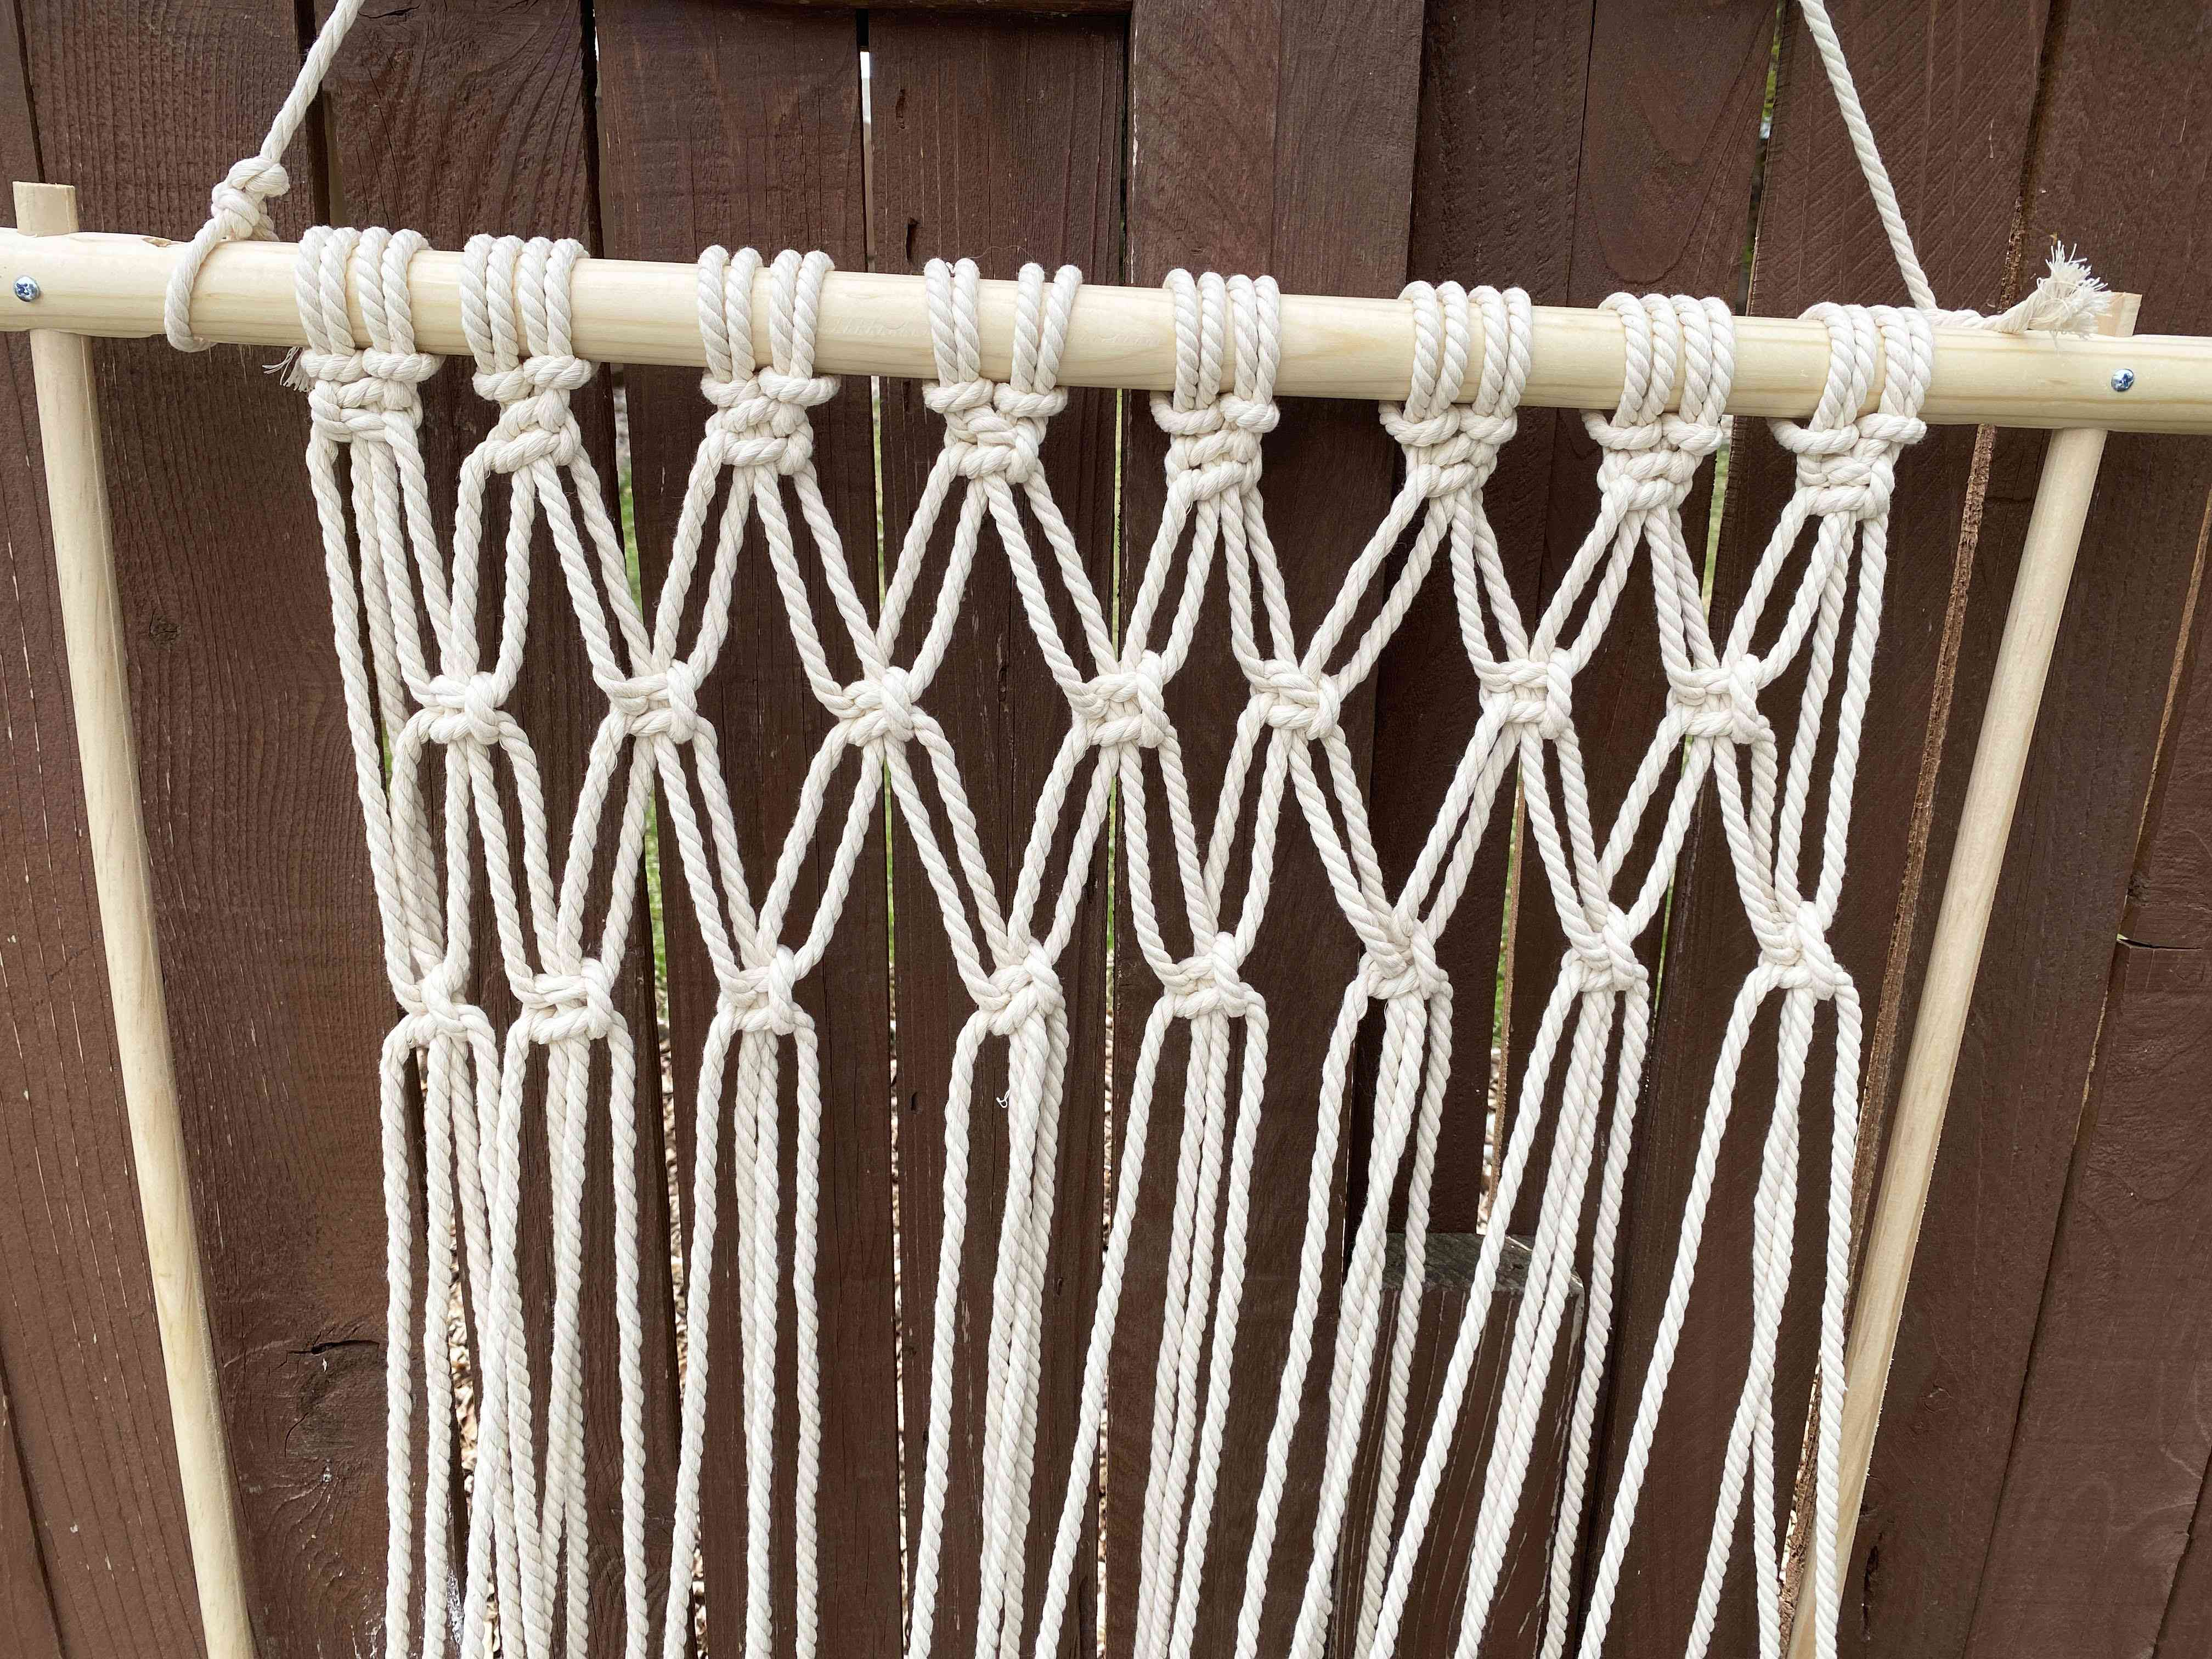 A group of square macrame knots